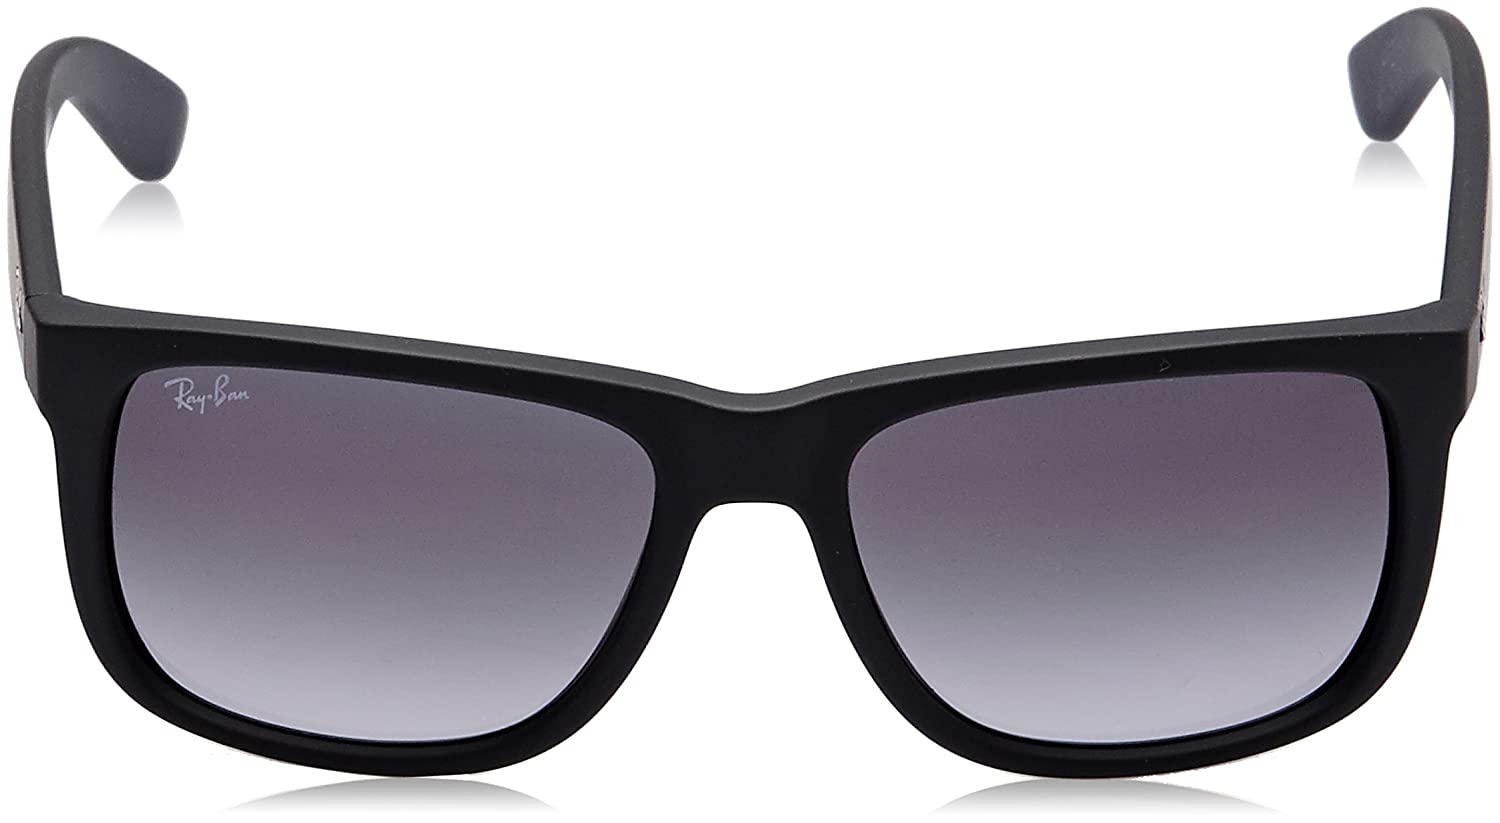 c3430d1a0c7 Amazon.com  Ray-Ban Justin RB4165 Sunglasses-601 8G Rubber Black Gray  Gradient-51mm  Ray-Ban  Clothing